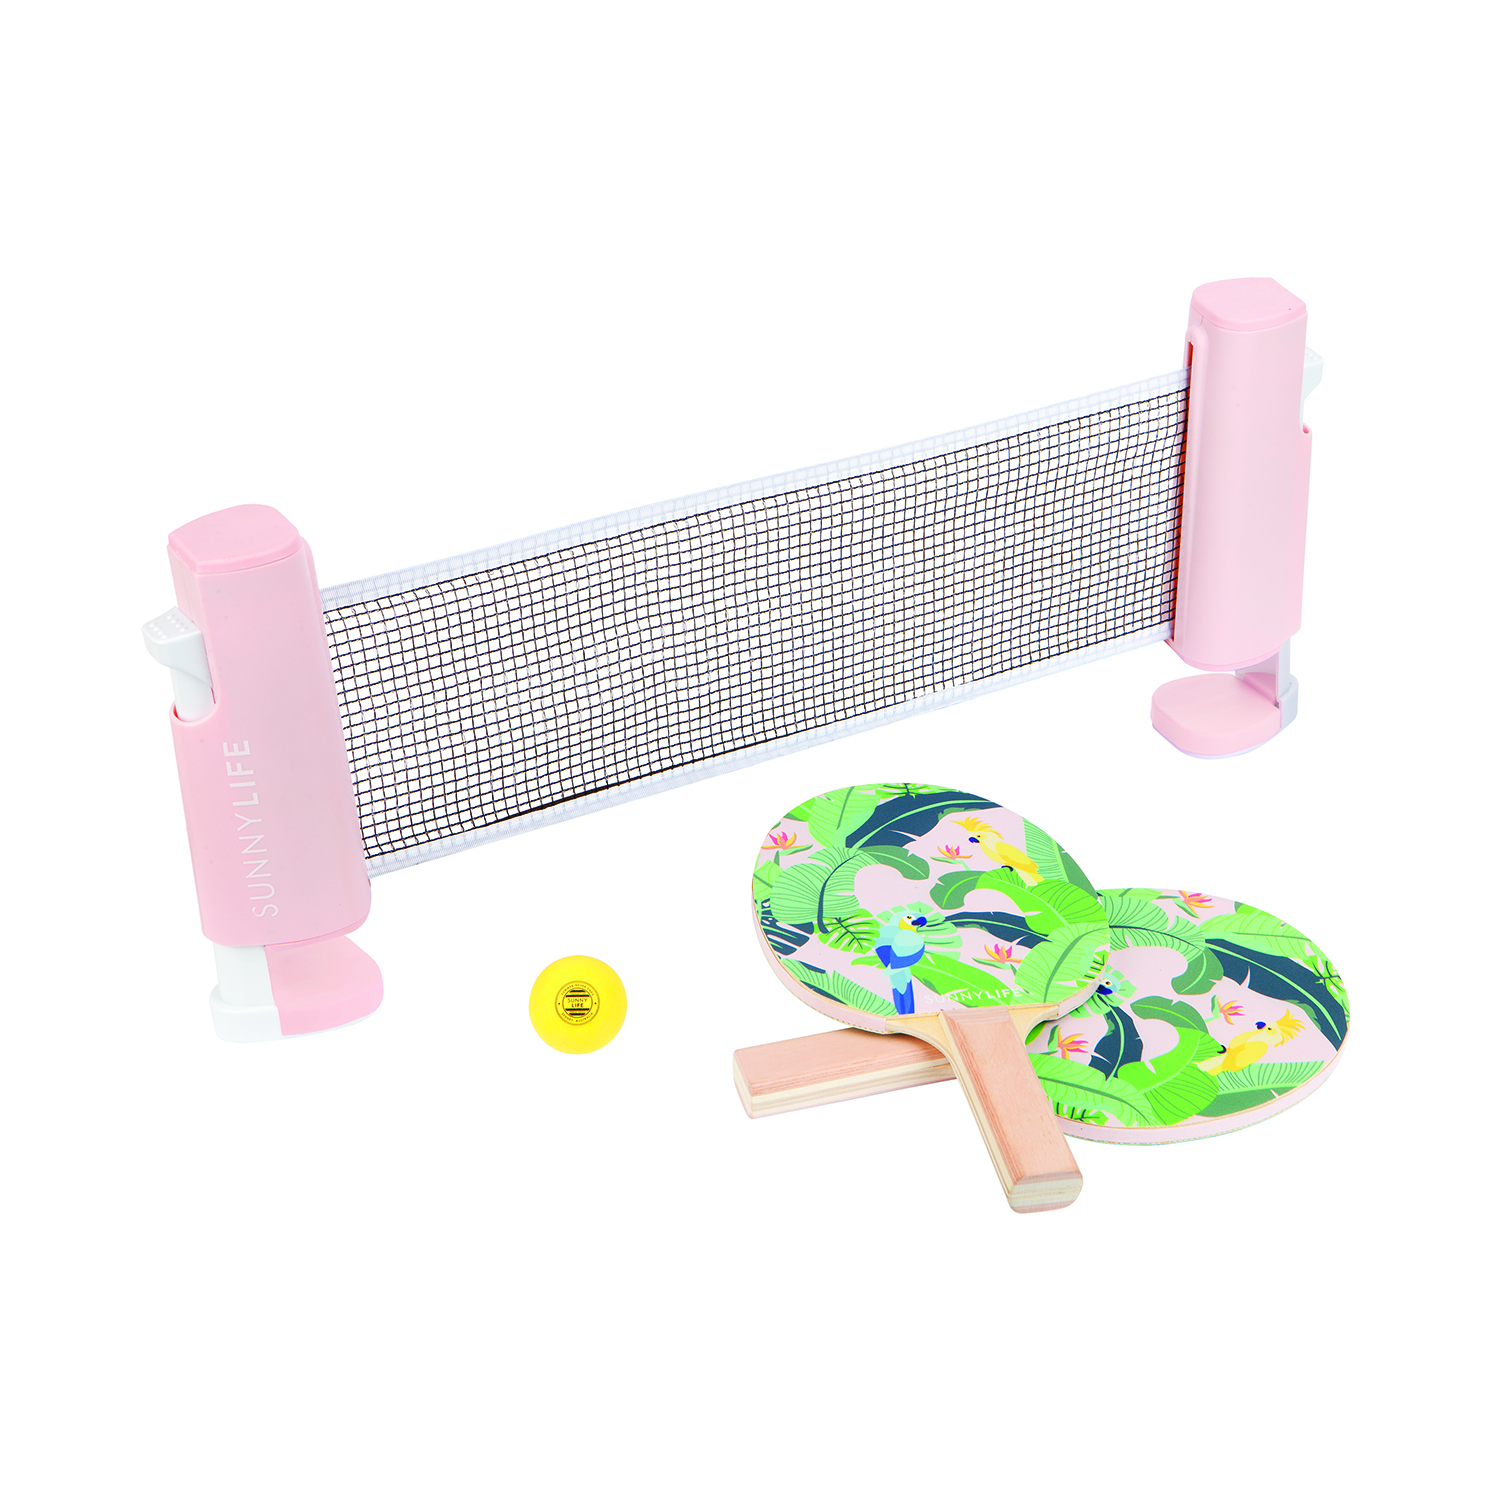 Sunnylife – Monteverde Play On Table Tennis/Ping Pong Set in Box